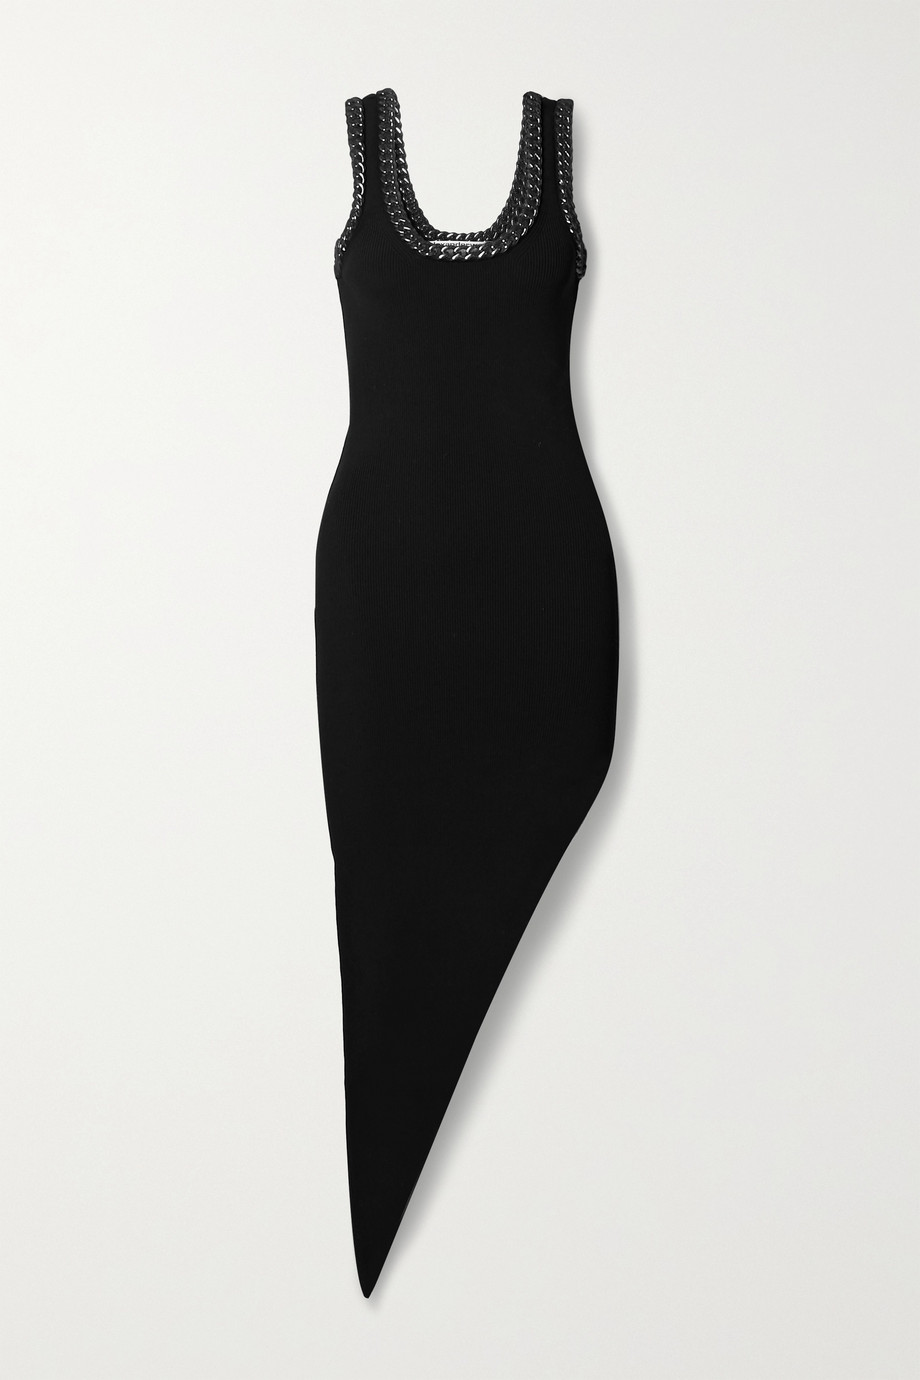 Alexander Wang Asymmetric chain-embellished mesh-trimmed stretch-knit dress